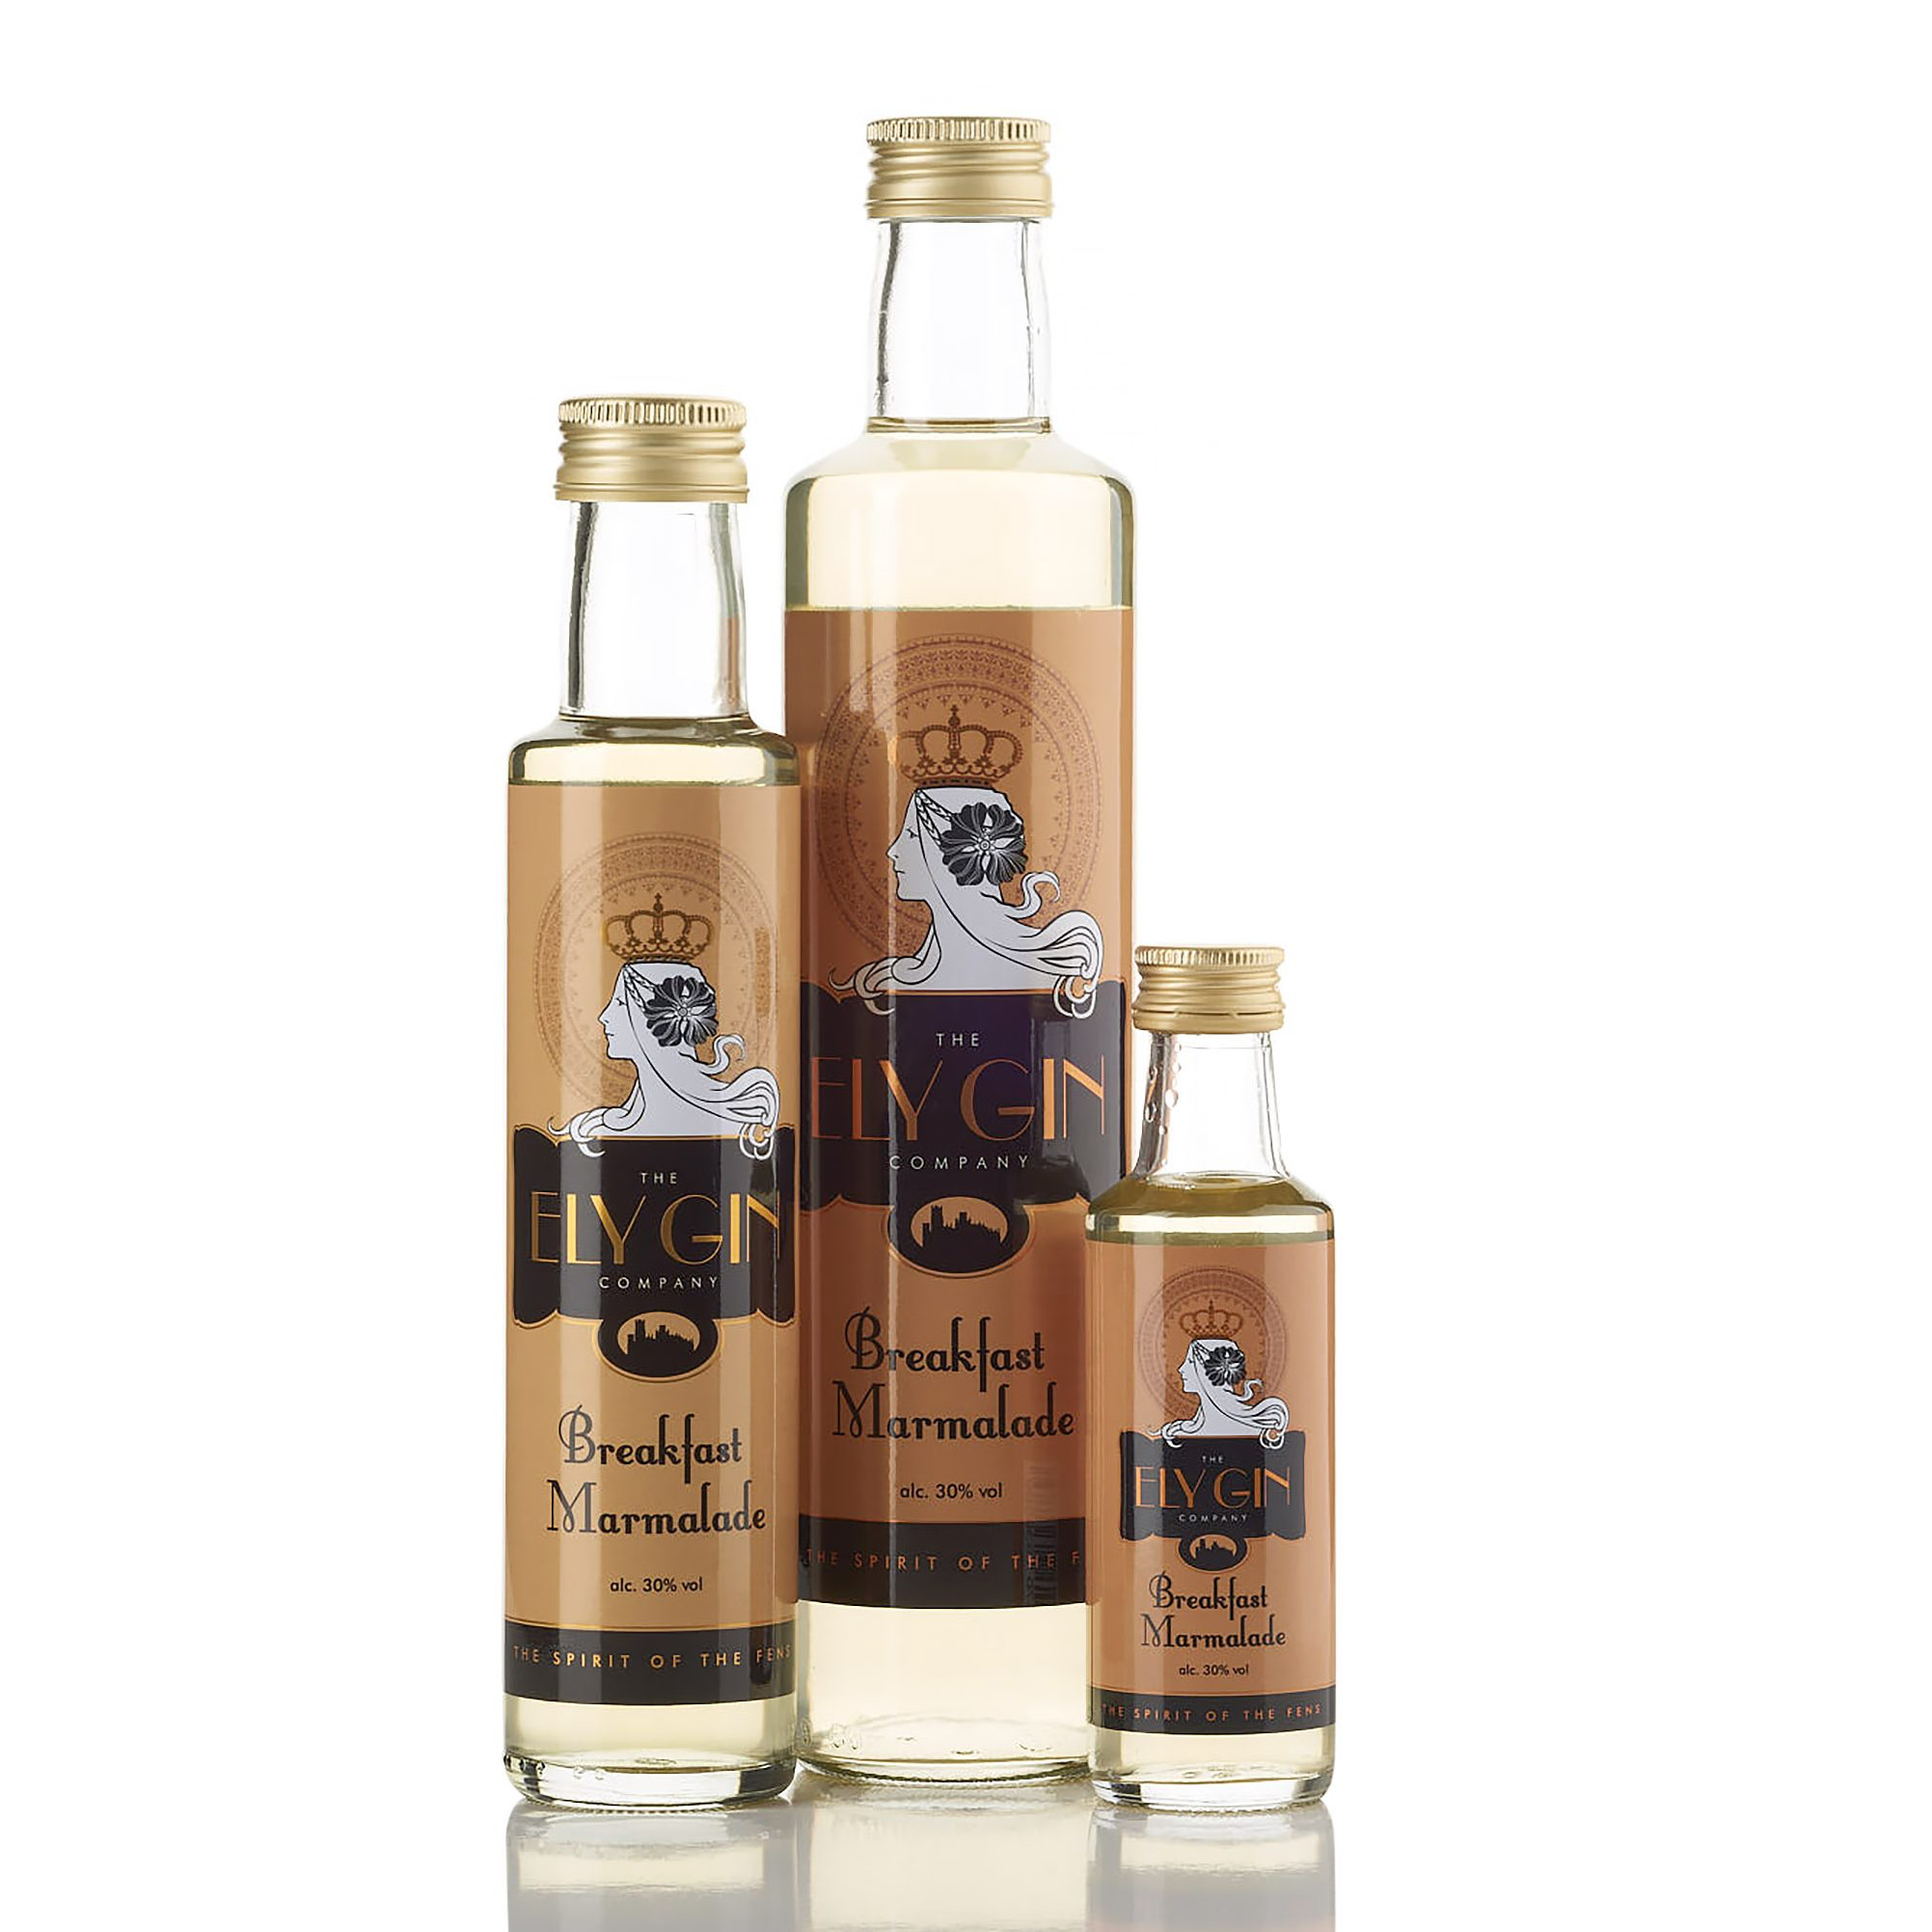 Ely Gin with Breakfast Marmalade 30% 100ml, 250ml & 500ml